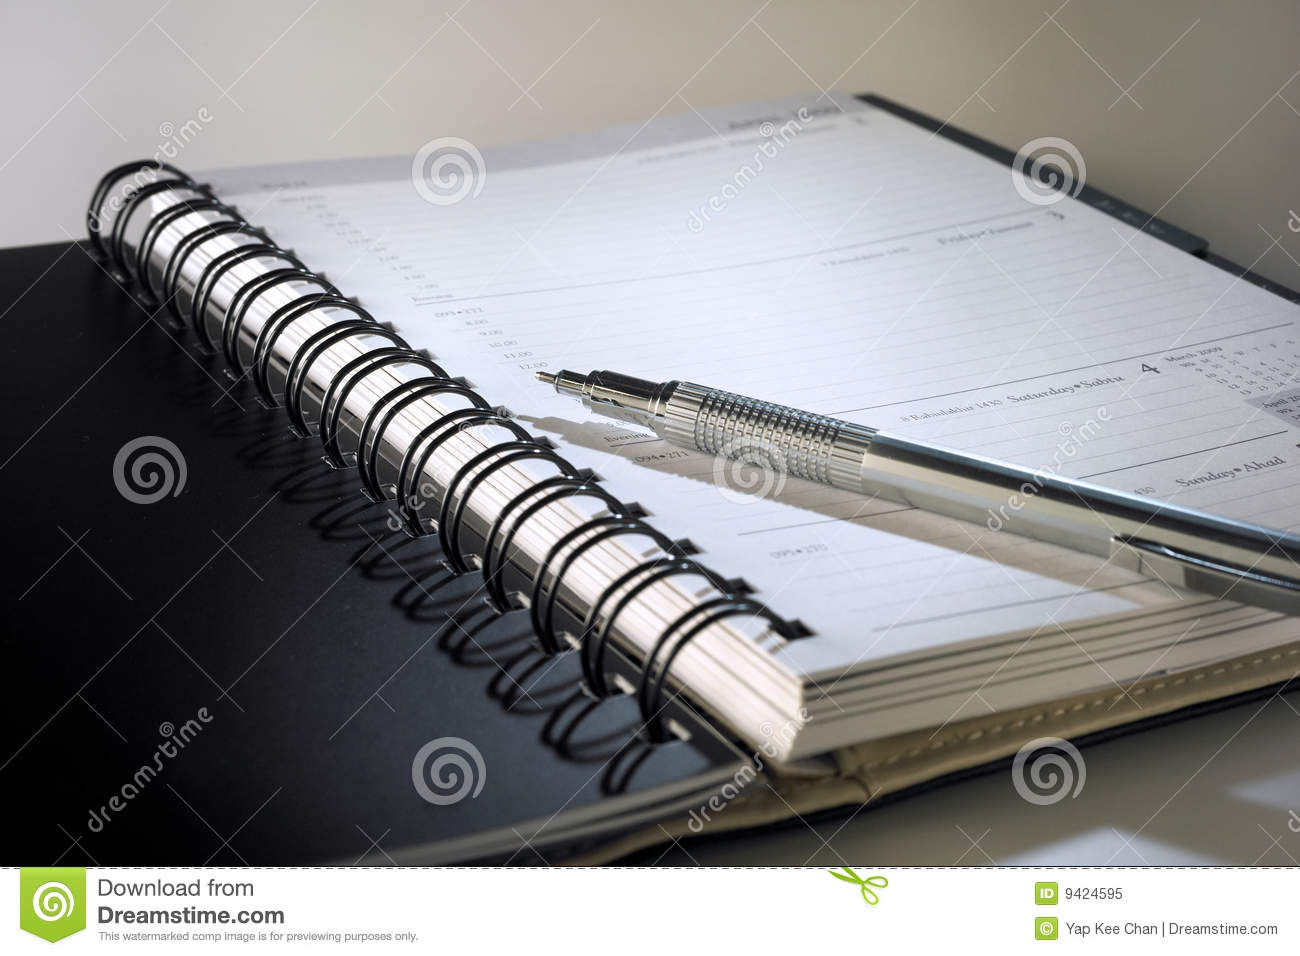 Parchment likewise Df Bec Dc D E Ba F E Setting Goals Goal Settings moreover Restored Buffet besides Postpartum Before And After X also Leather Folder Dorr. on busy binder